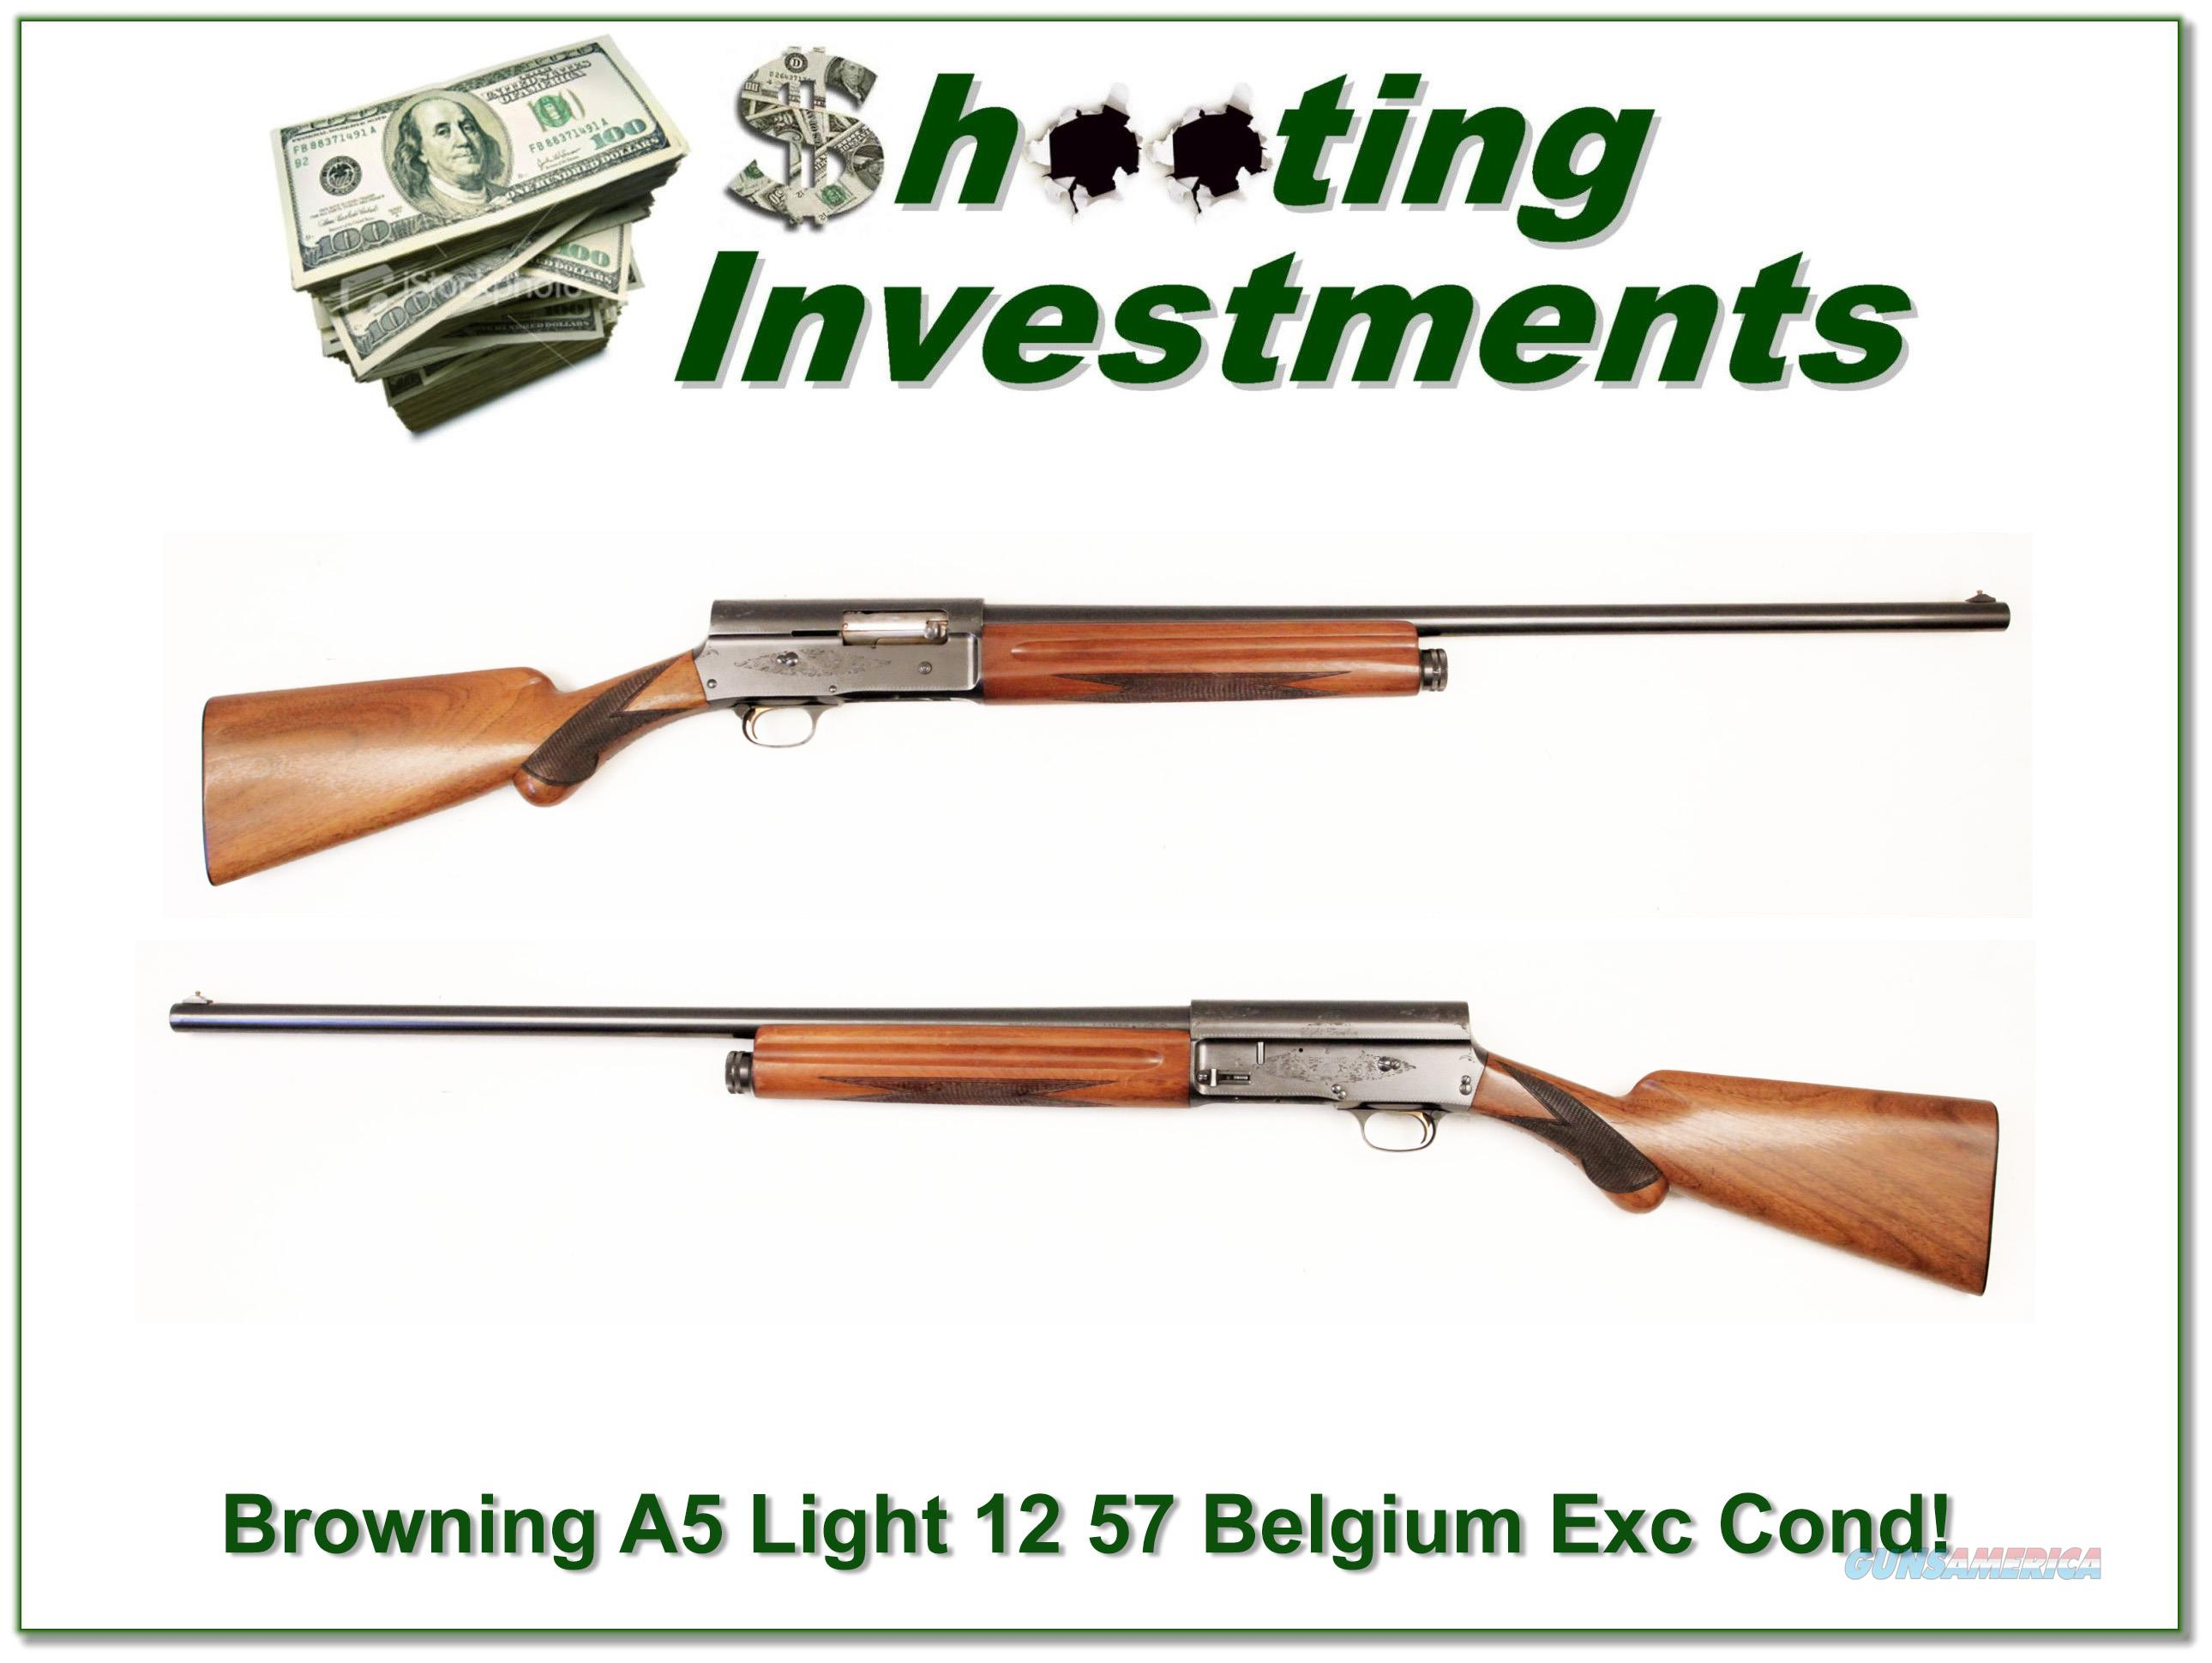 Browning A5 Light 12 57 Belgium Exc Cond!  Guns > Shotguns > Browning Shotguns > Autoloaders > Hunting